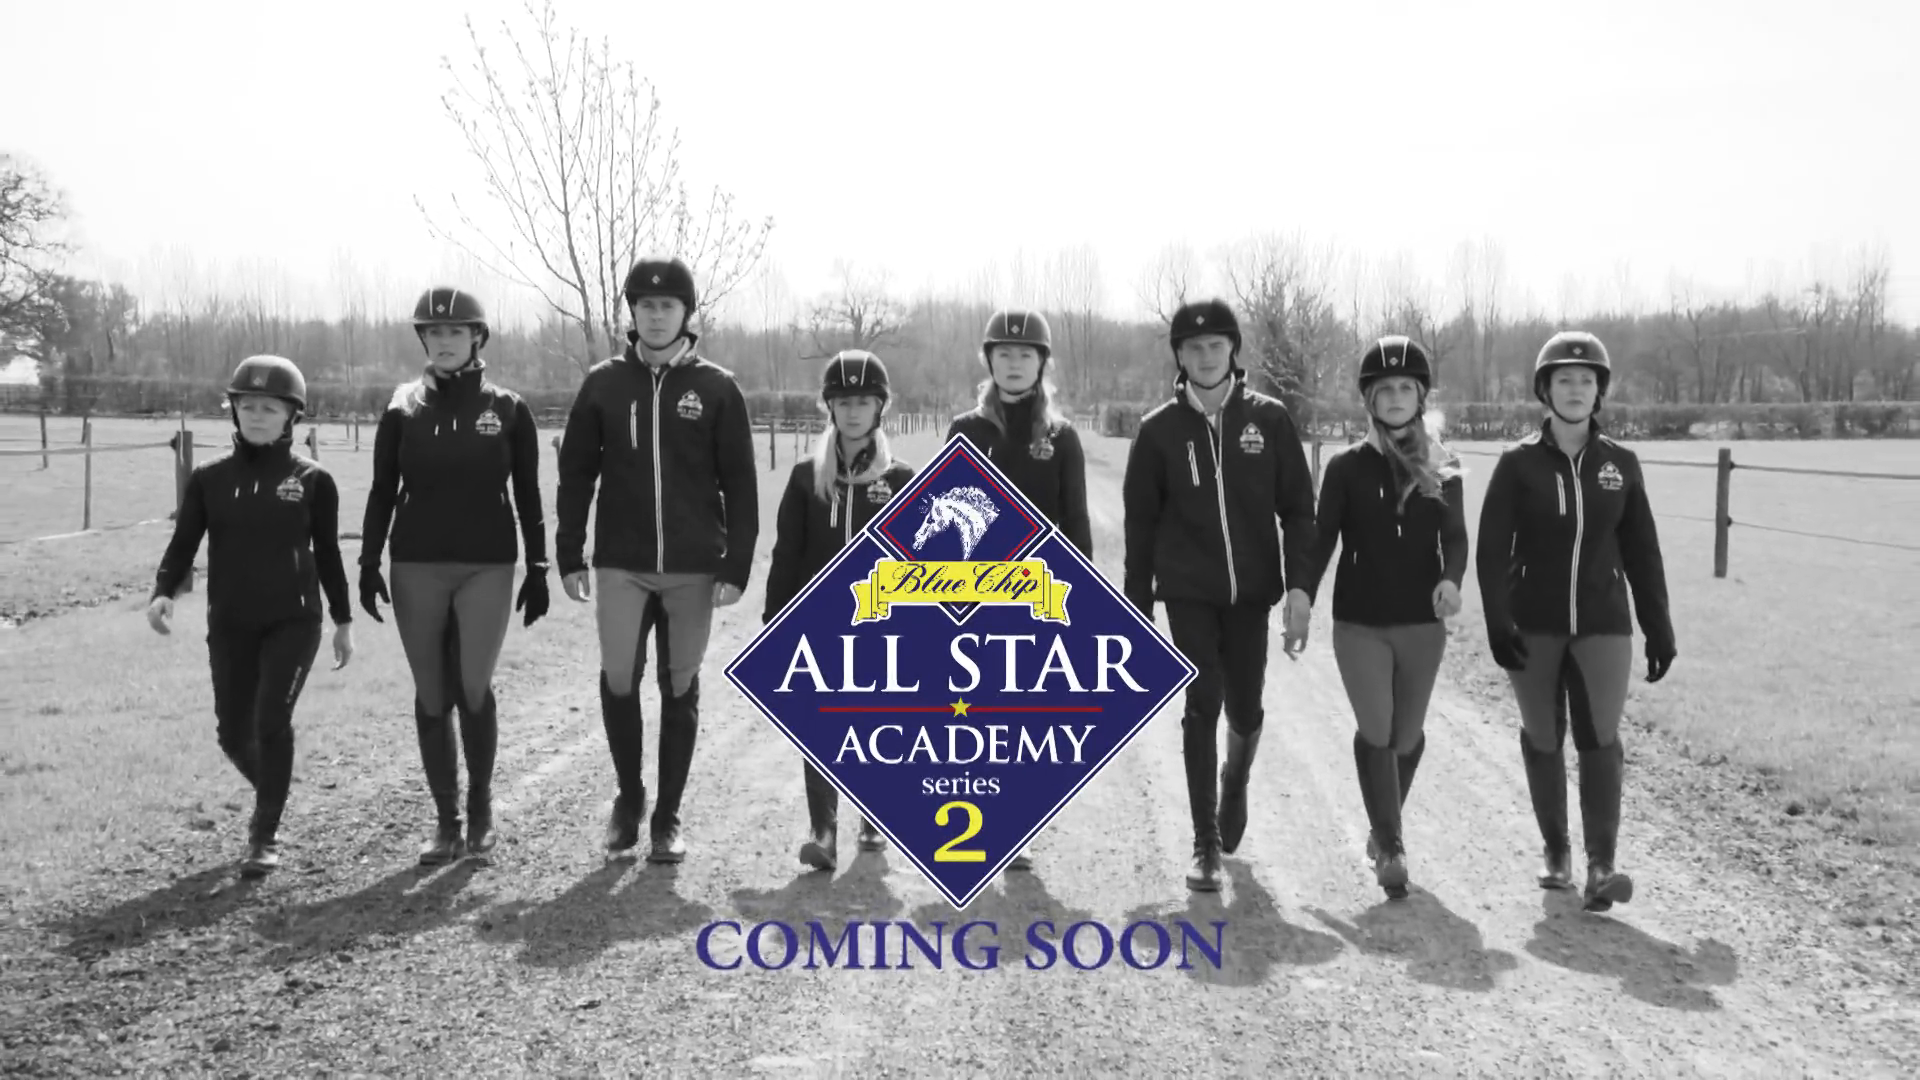 Horse Amp Country Tv Brings You Blue Chip All Star Academy